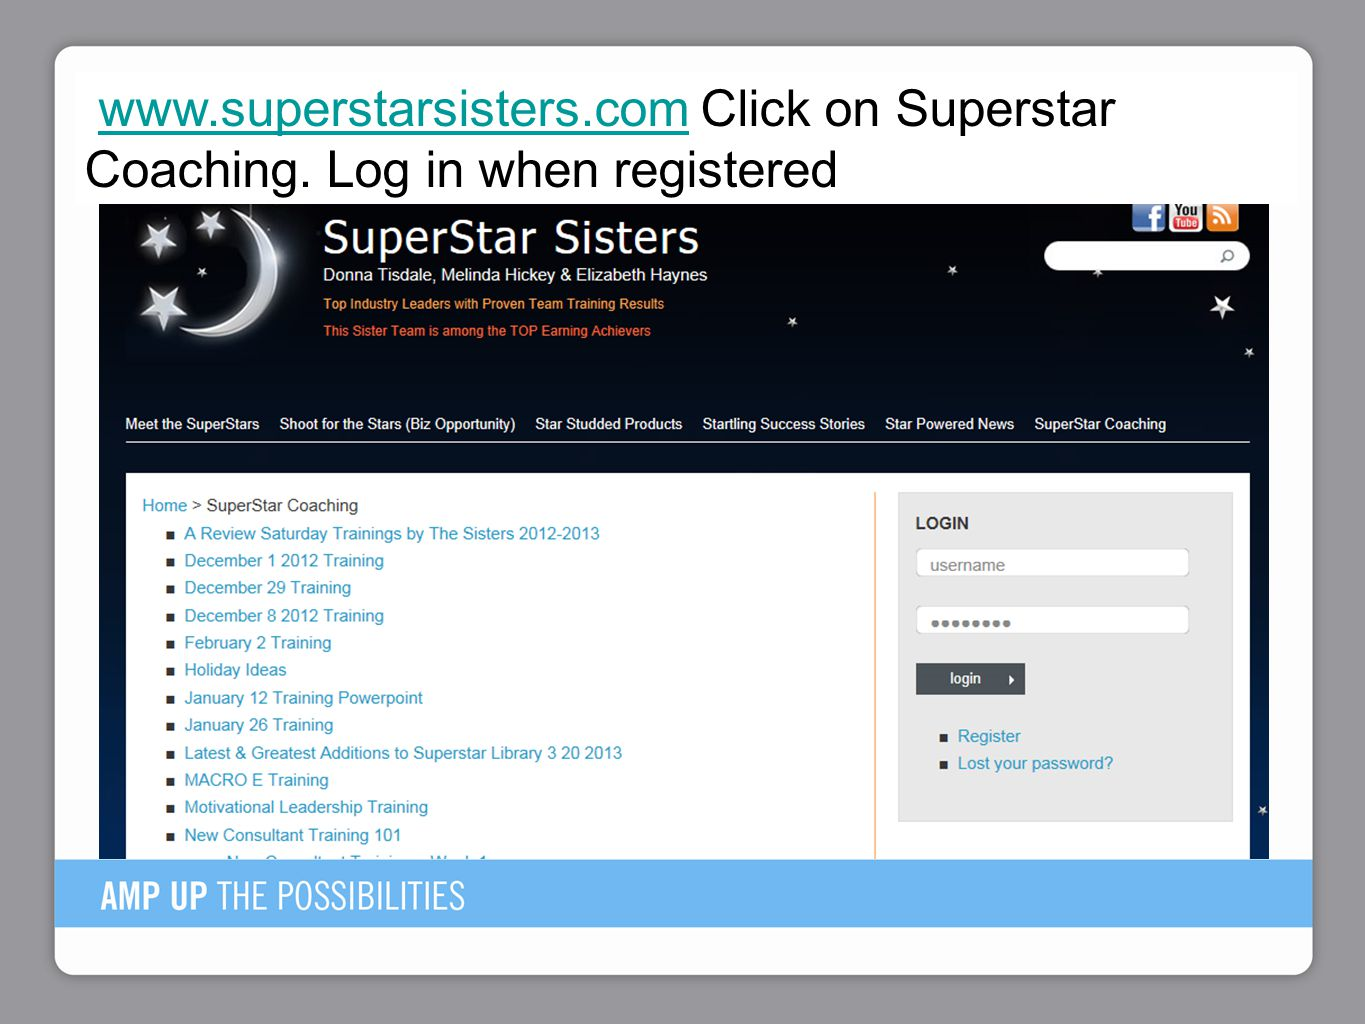 www. superstarsisters. com Click on Superstar Coaching